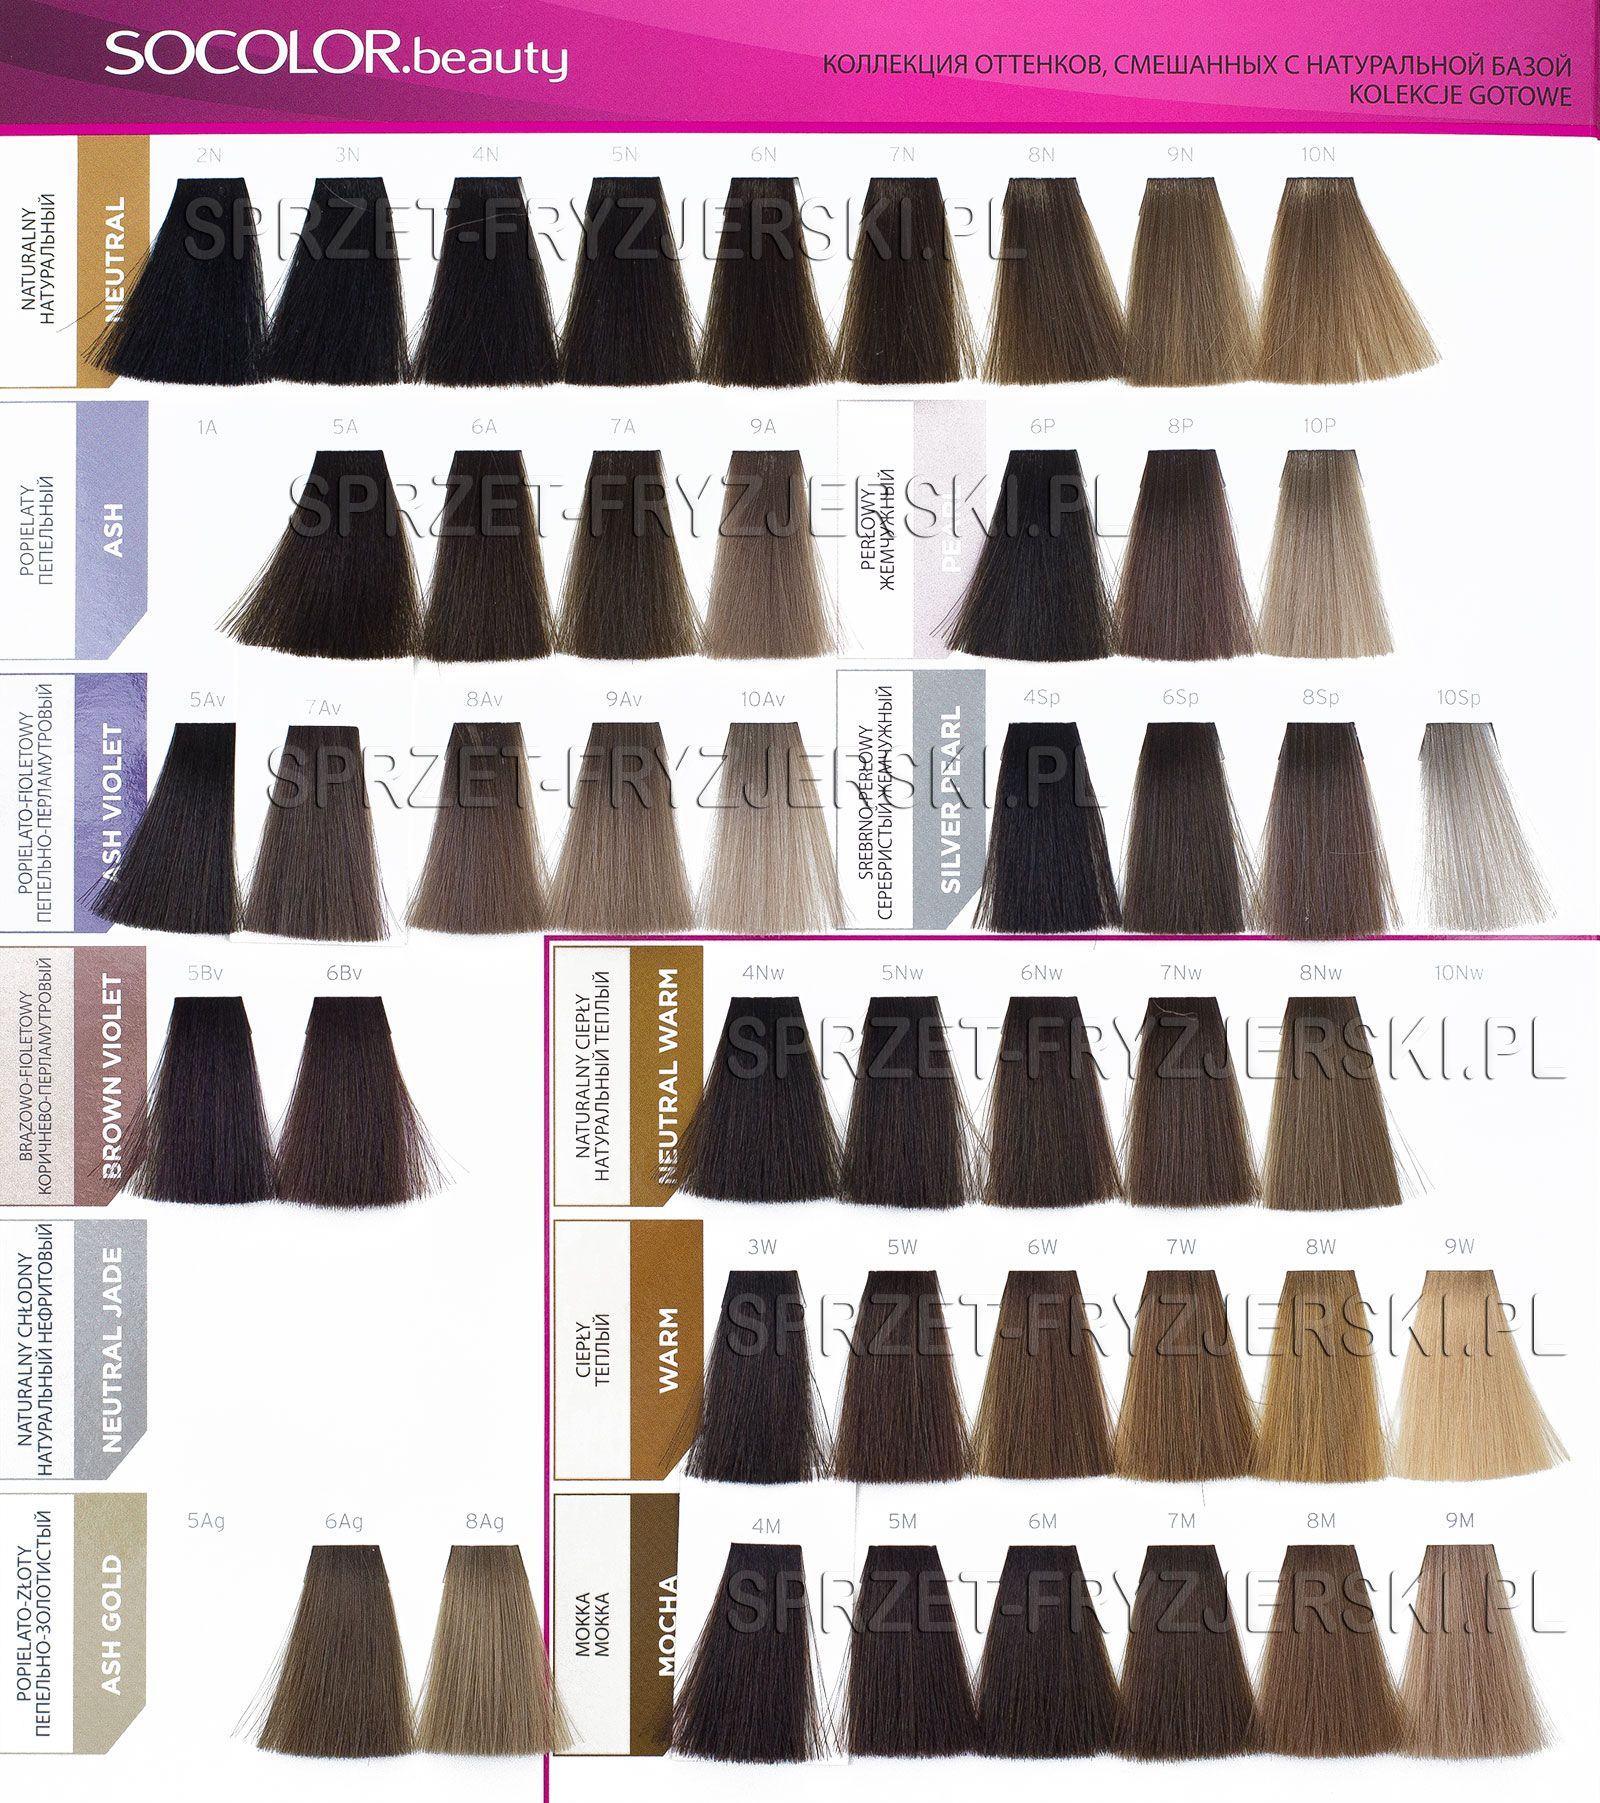 Matrix Socolor Beauty Farba Do Trwalej Koloryzacji 90ml Matrix Hair Color Matrix Hair Color Chart Hair Color Formulas